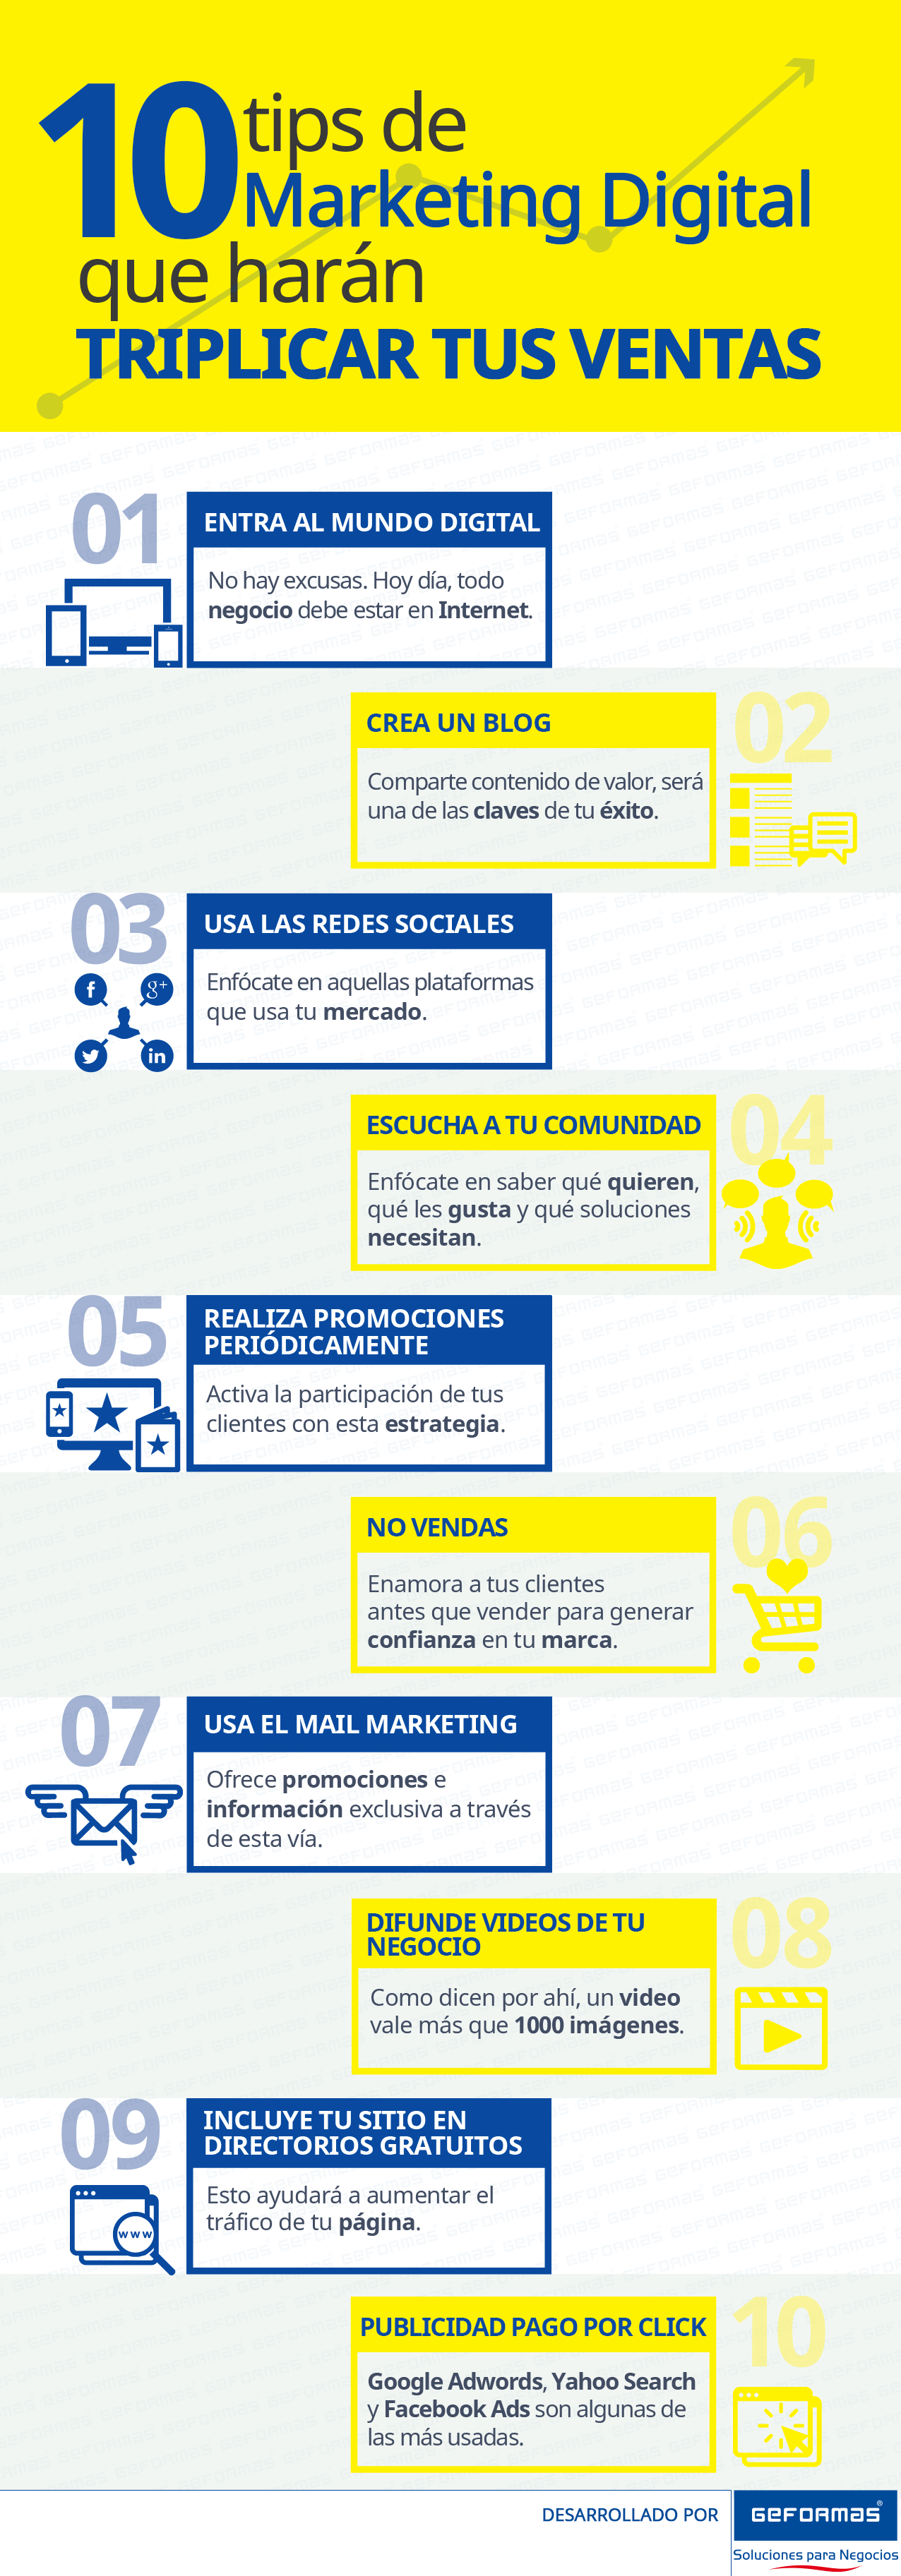 10 consejos de marketing digital para triplicar tus ventas